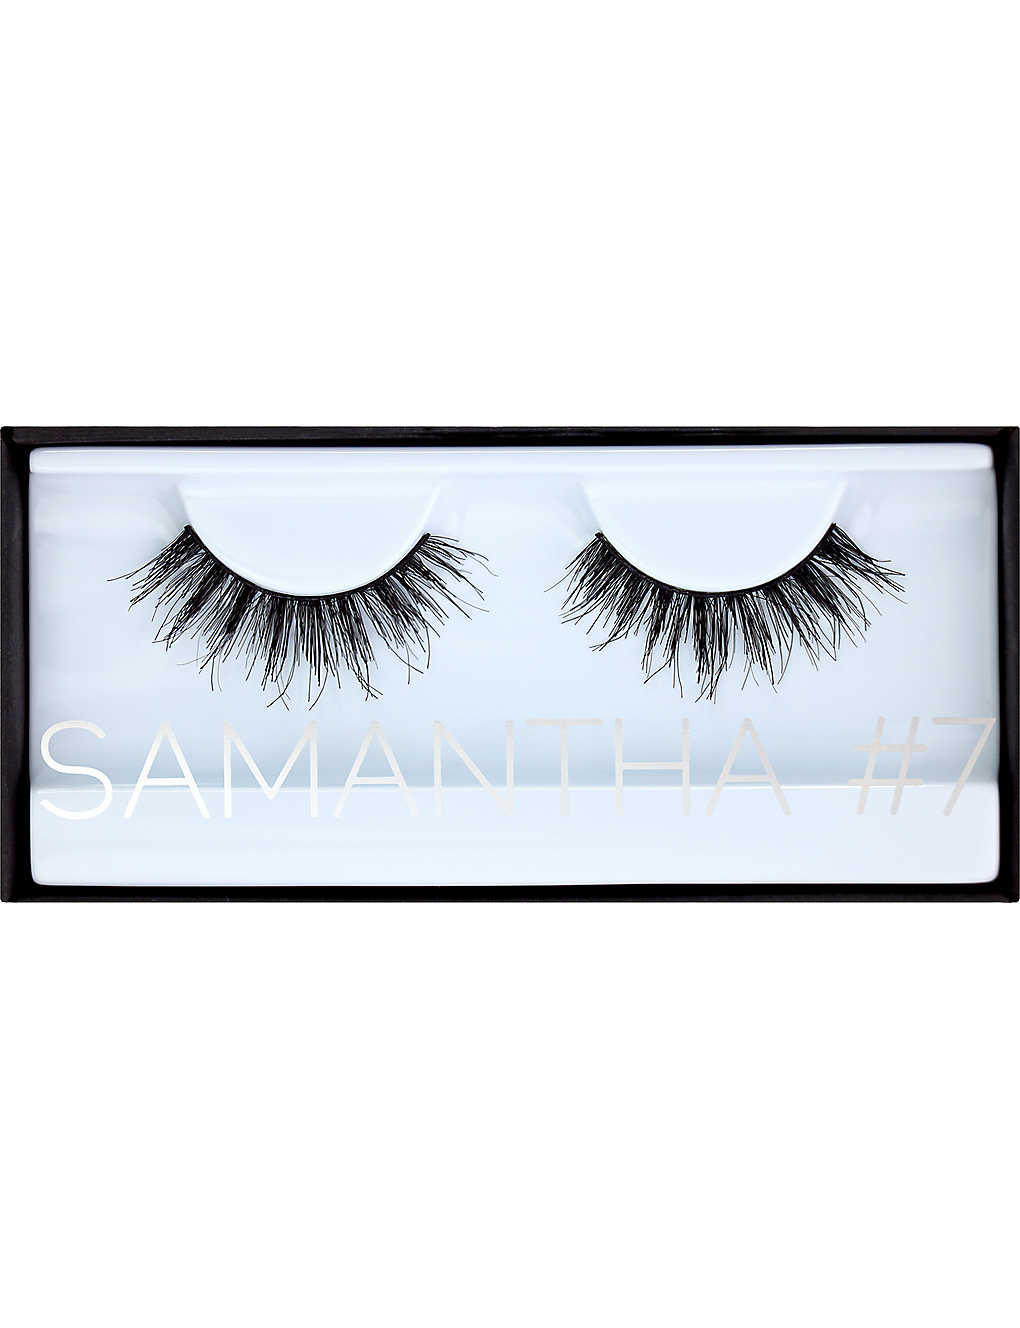 d1e7977a380 HUDA BEAUTY - Samantha Classic Lashes #7 | Selfridges.com